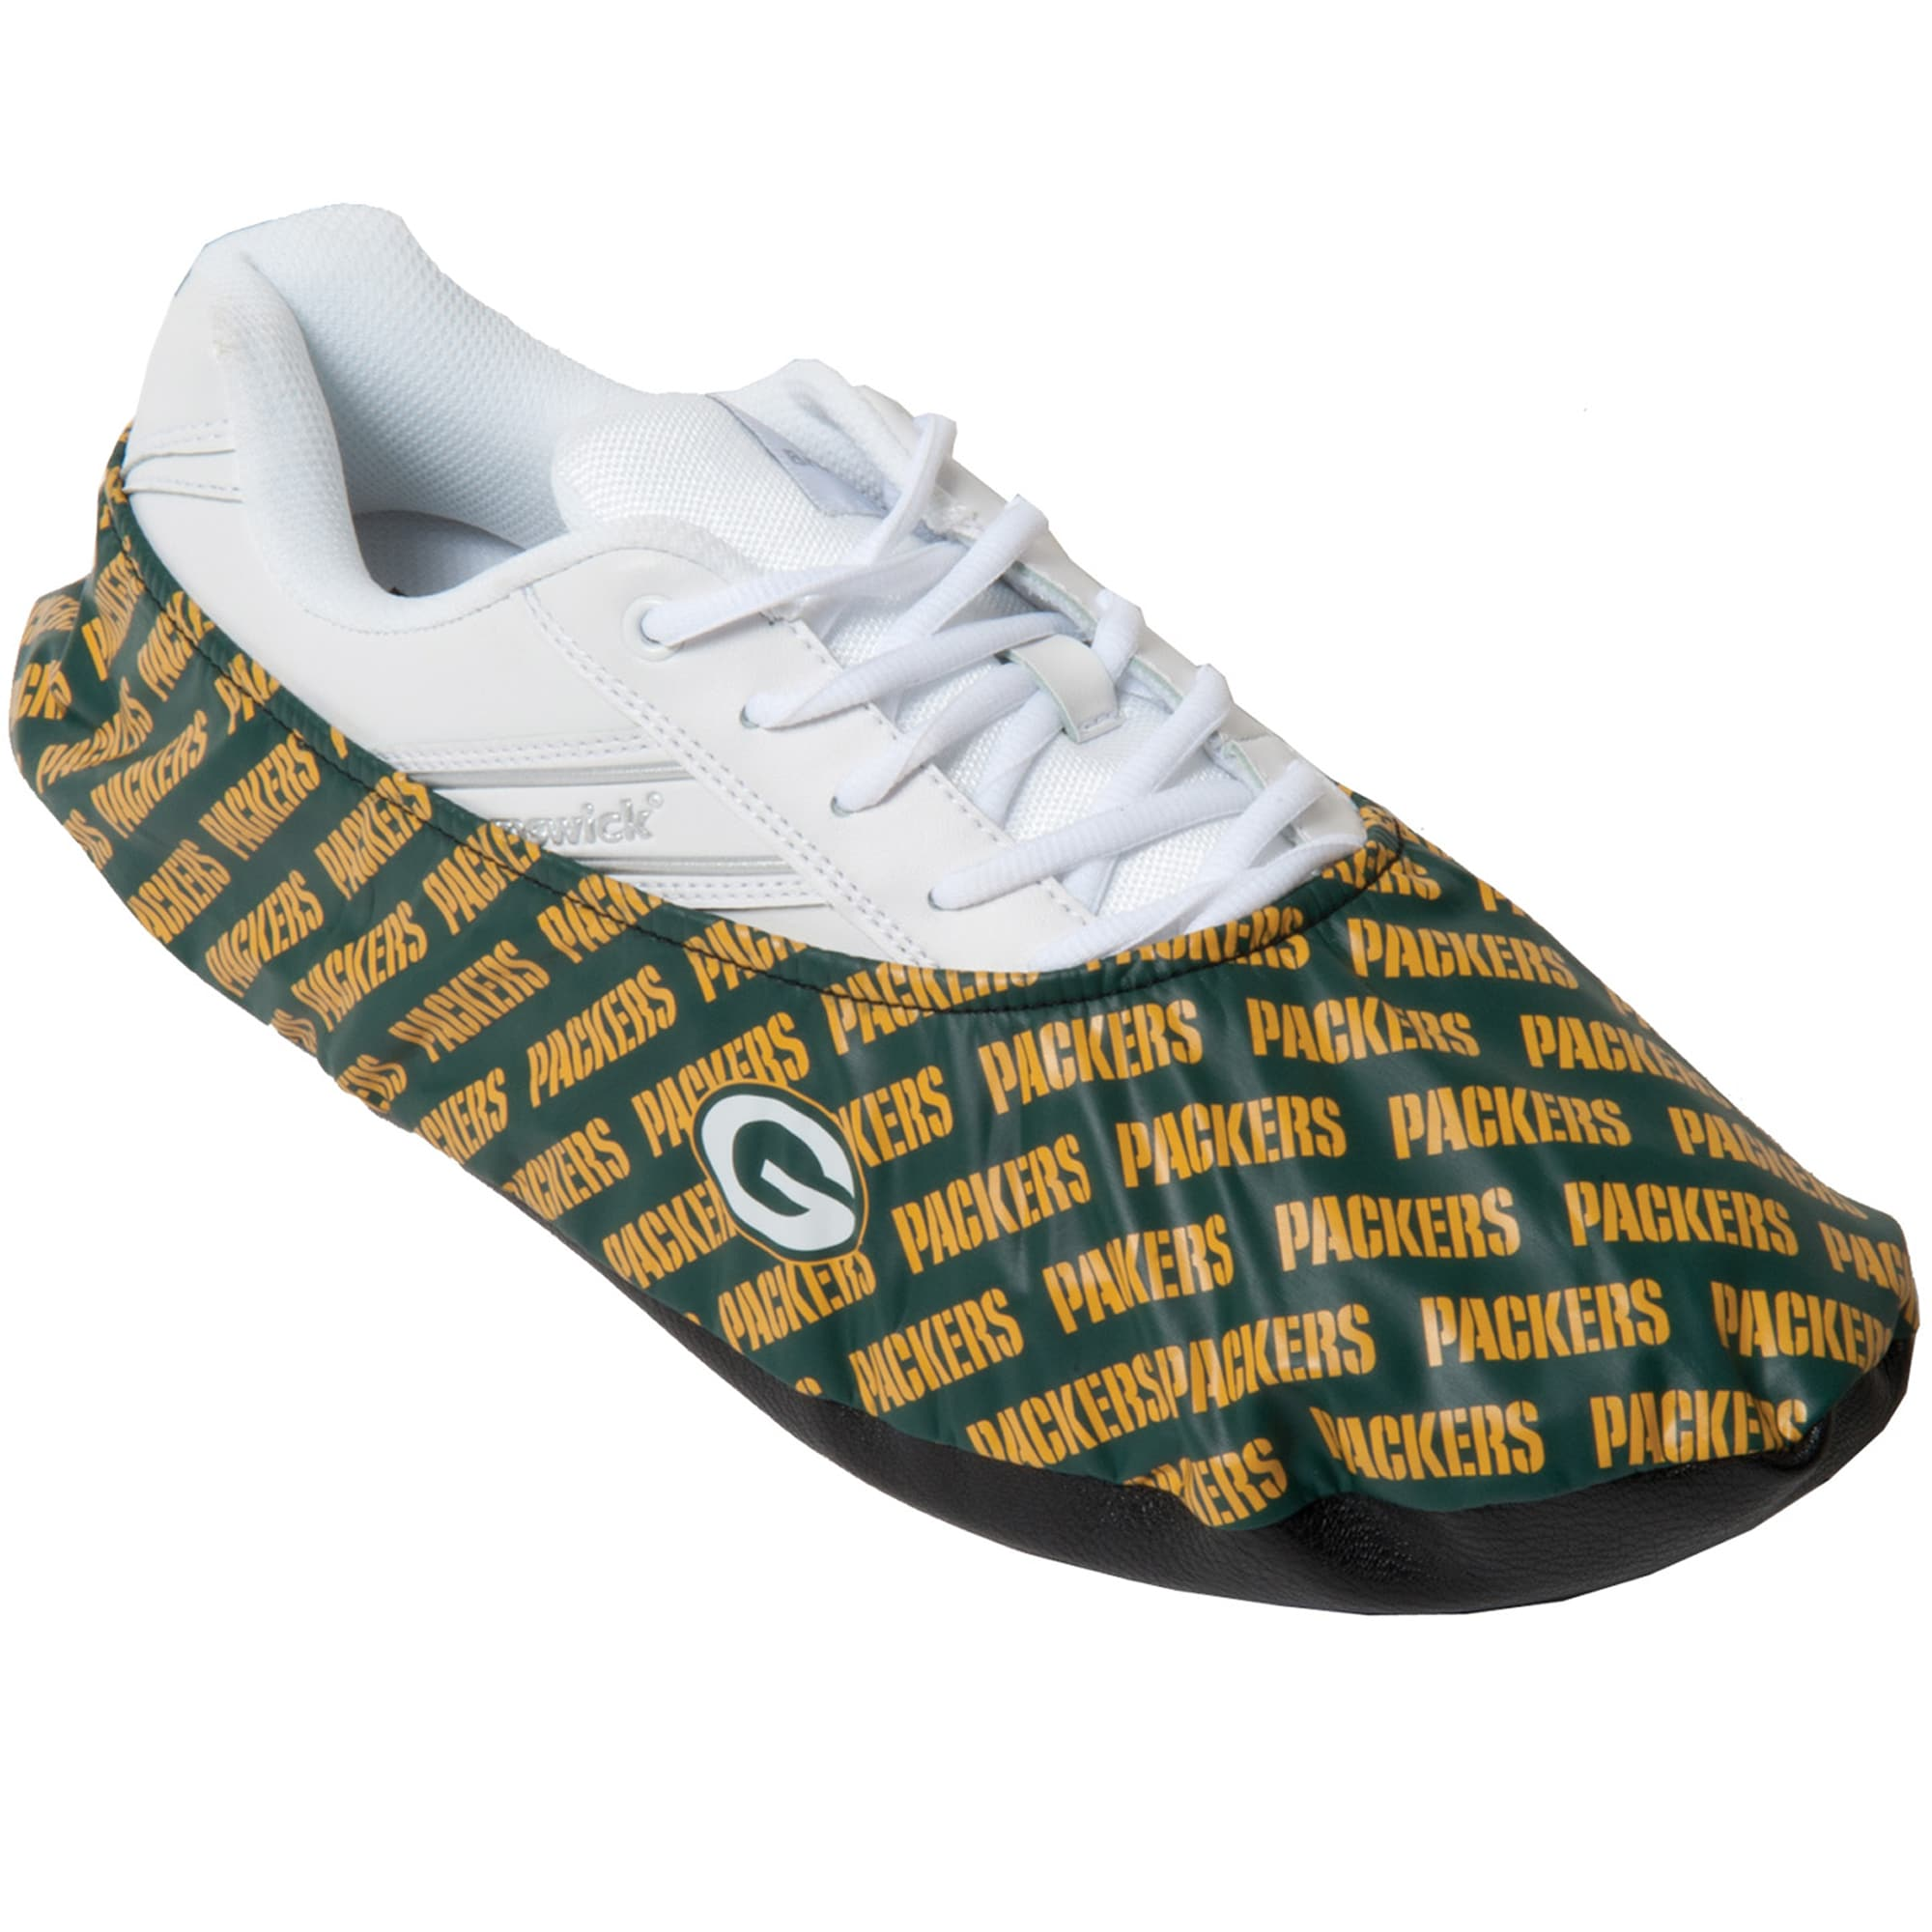 Green Bay Packers Bowling Shoe Cover - Green